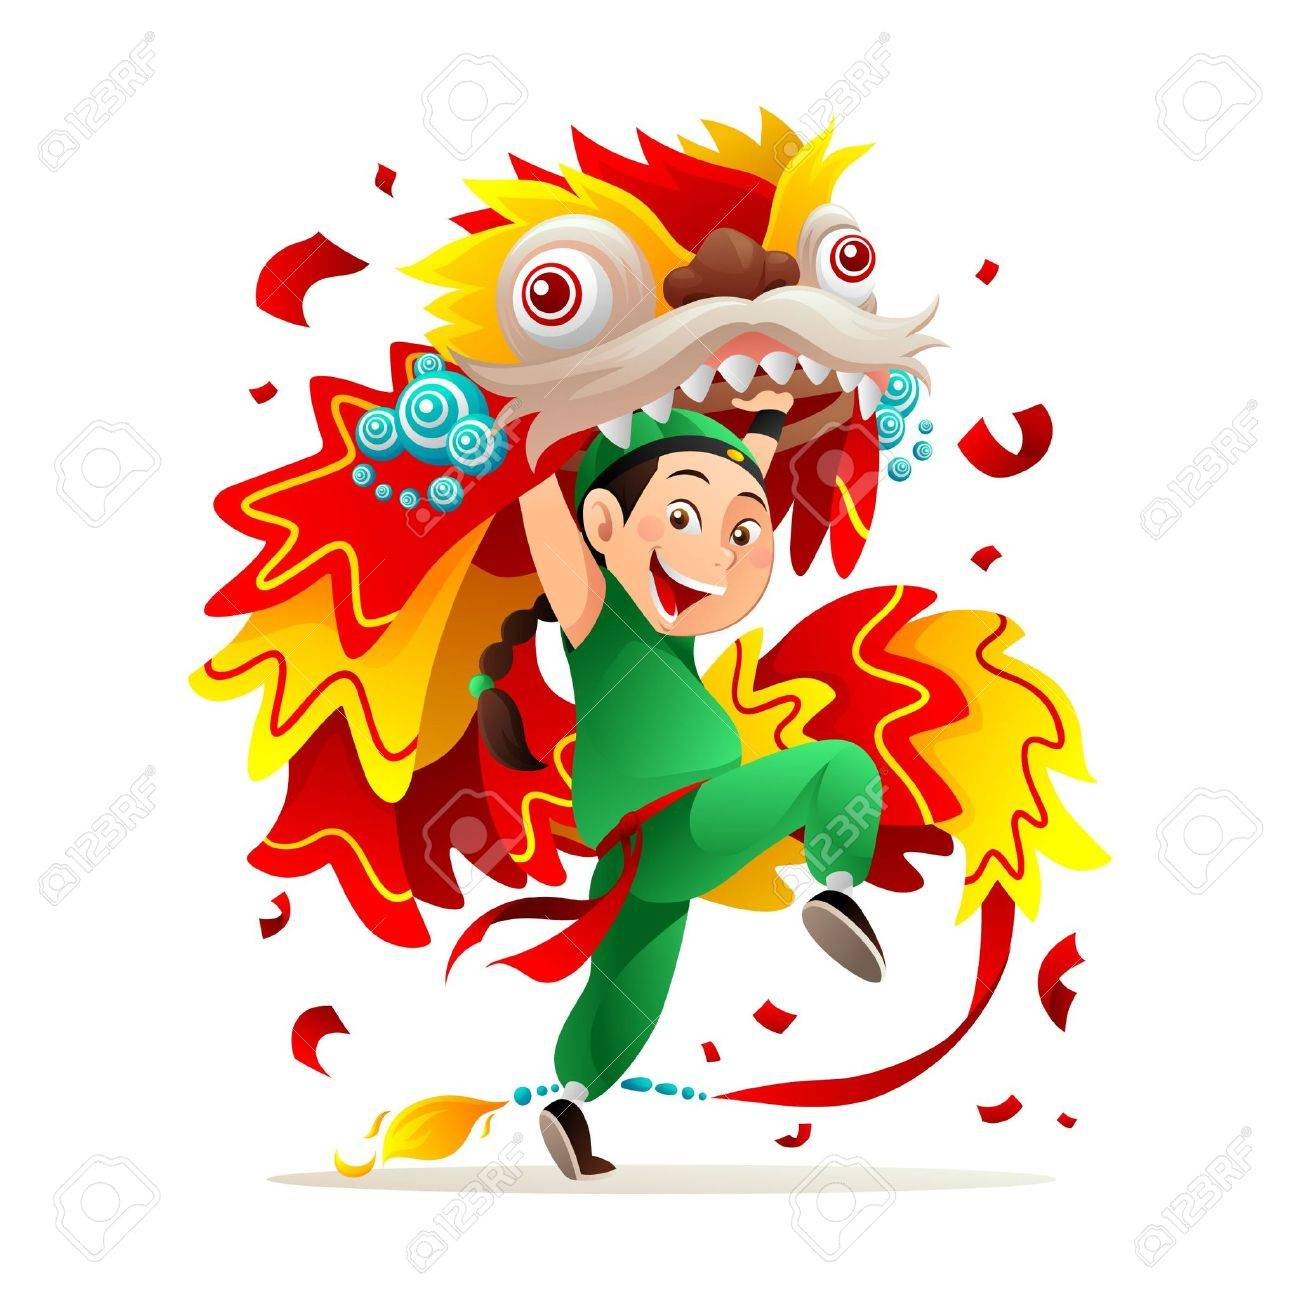 Chinese new year celebration Stock Vector - 8687512